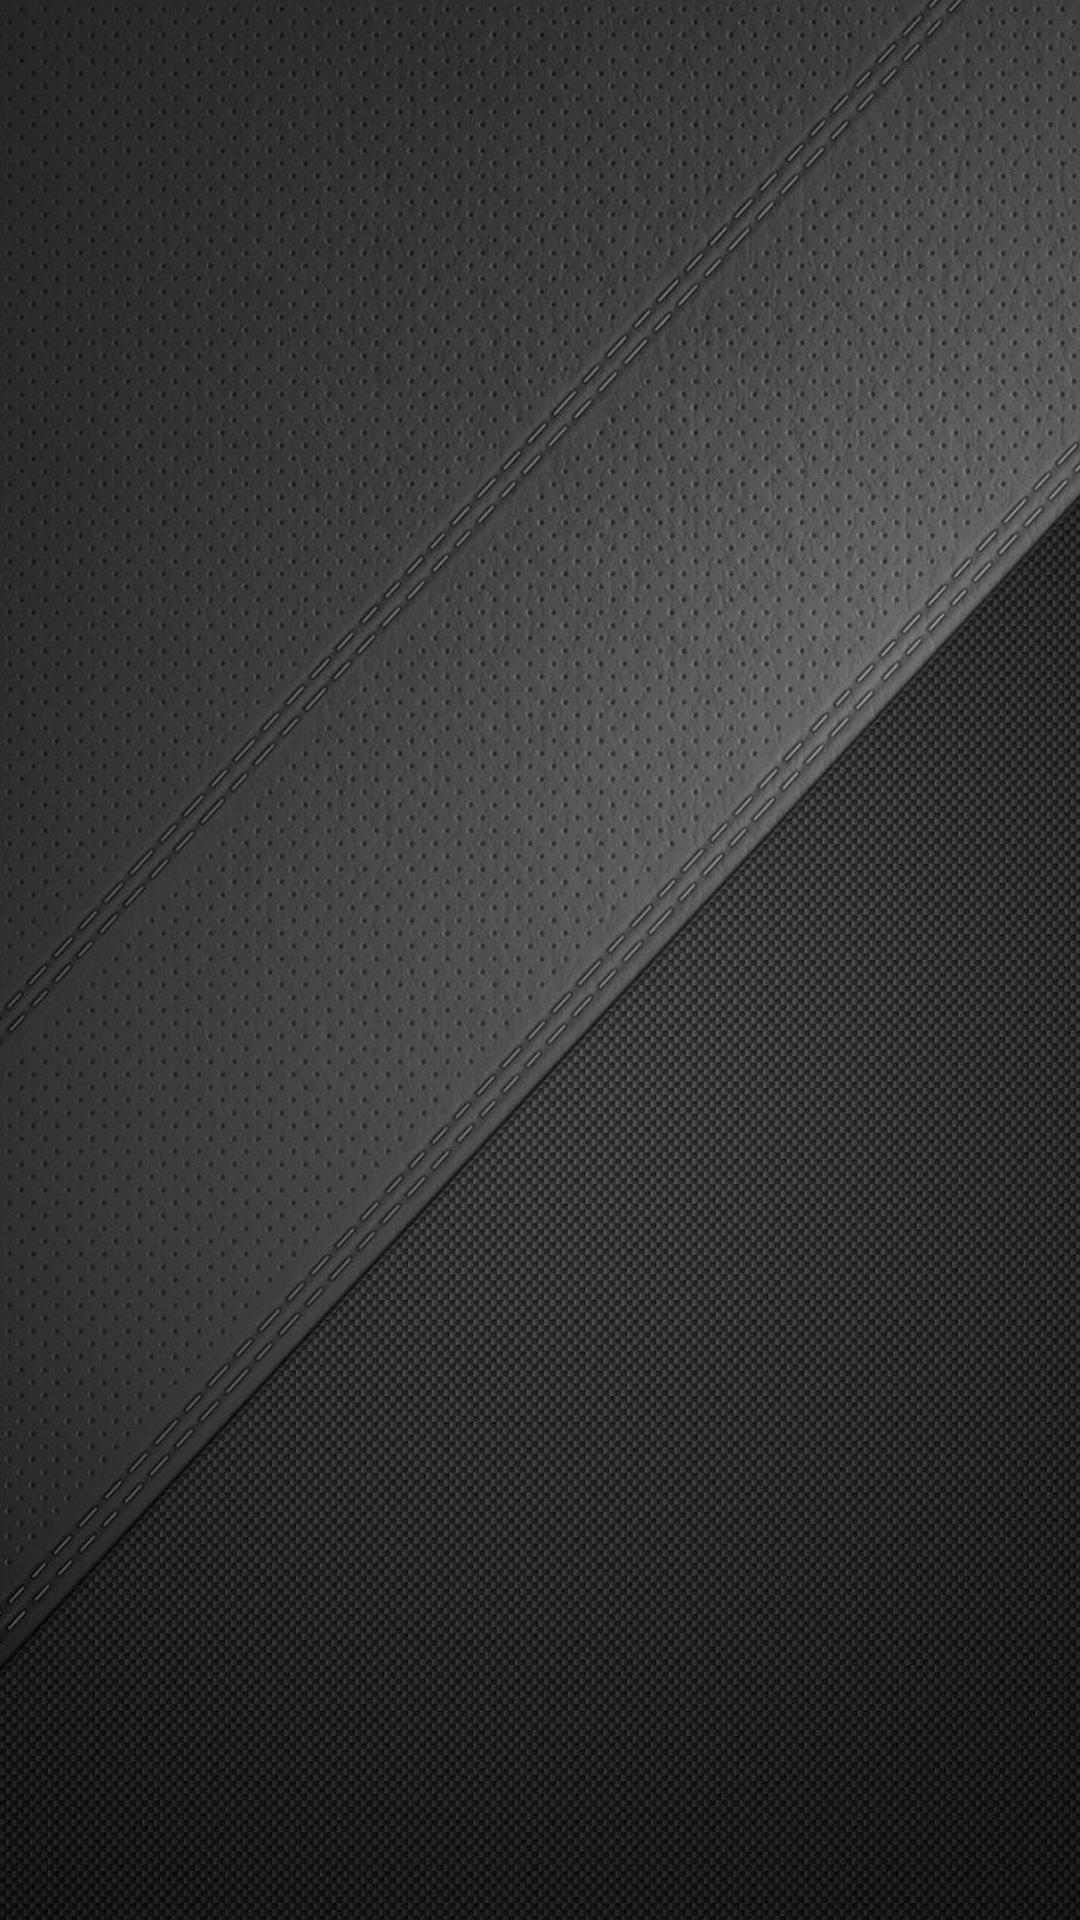 1080x1920 Perforated Leather Texture Dark Android Wallpaper free download